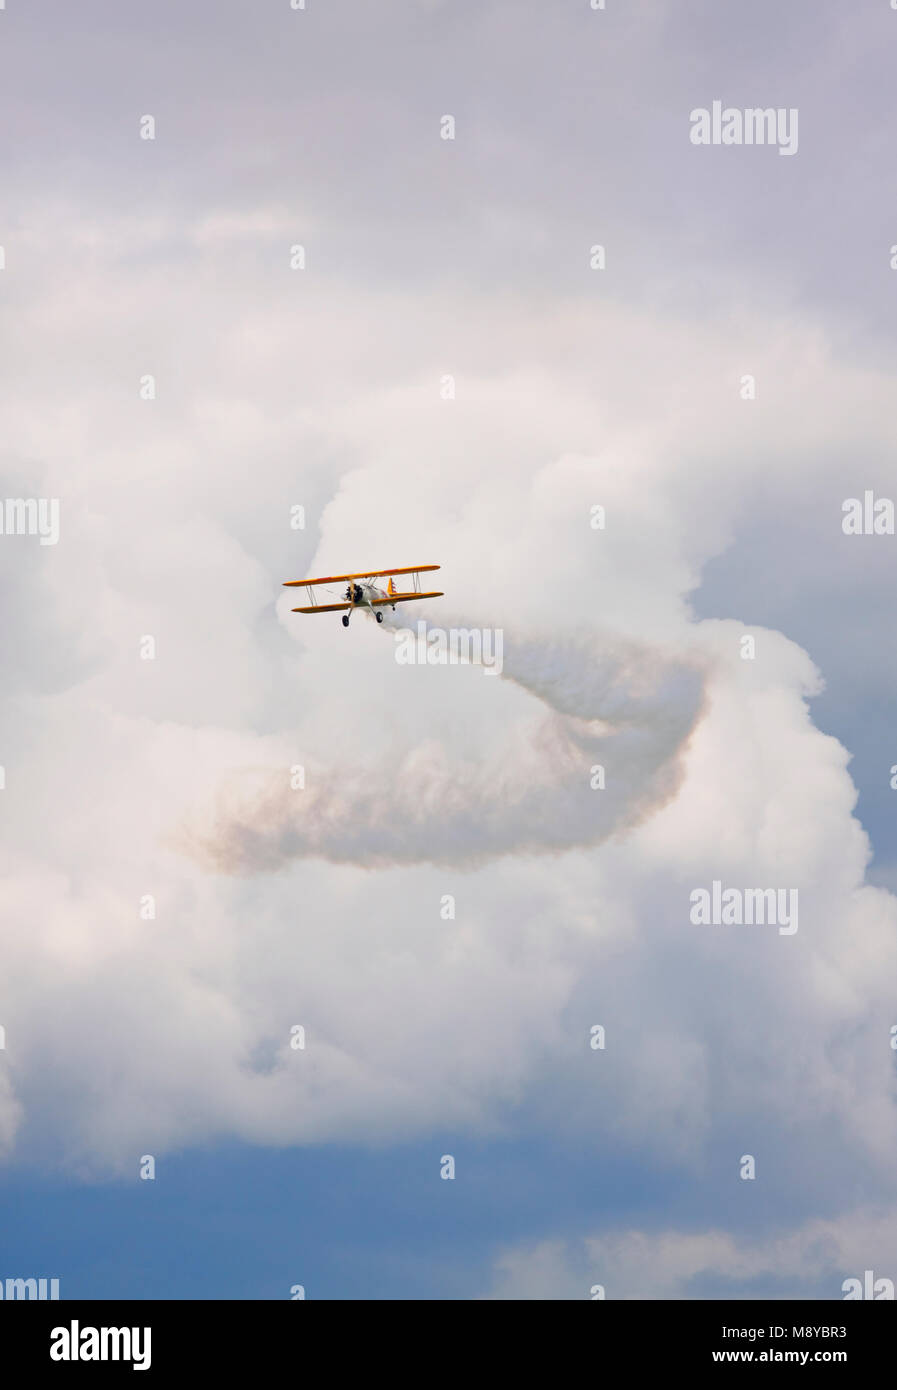 The Boeing Stearman N2S-3 flying over cloudy sky during International Air Show at the 90th Jubilee of The Polish - Stock Image